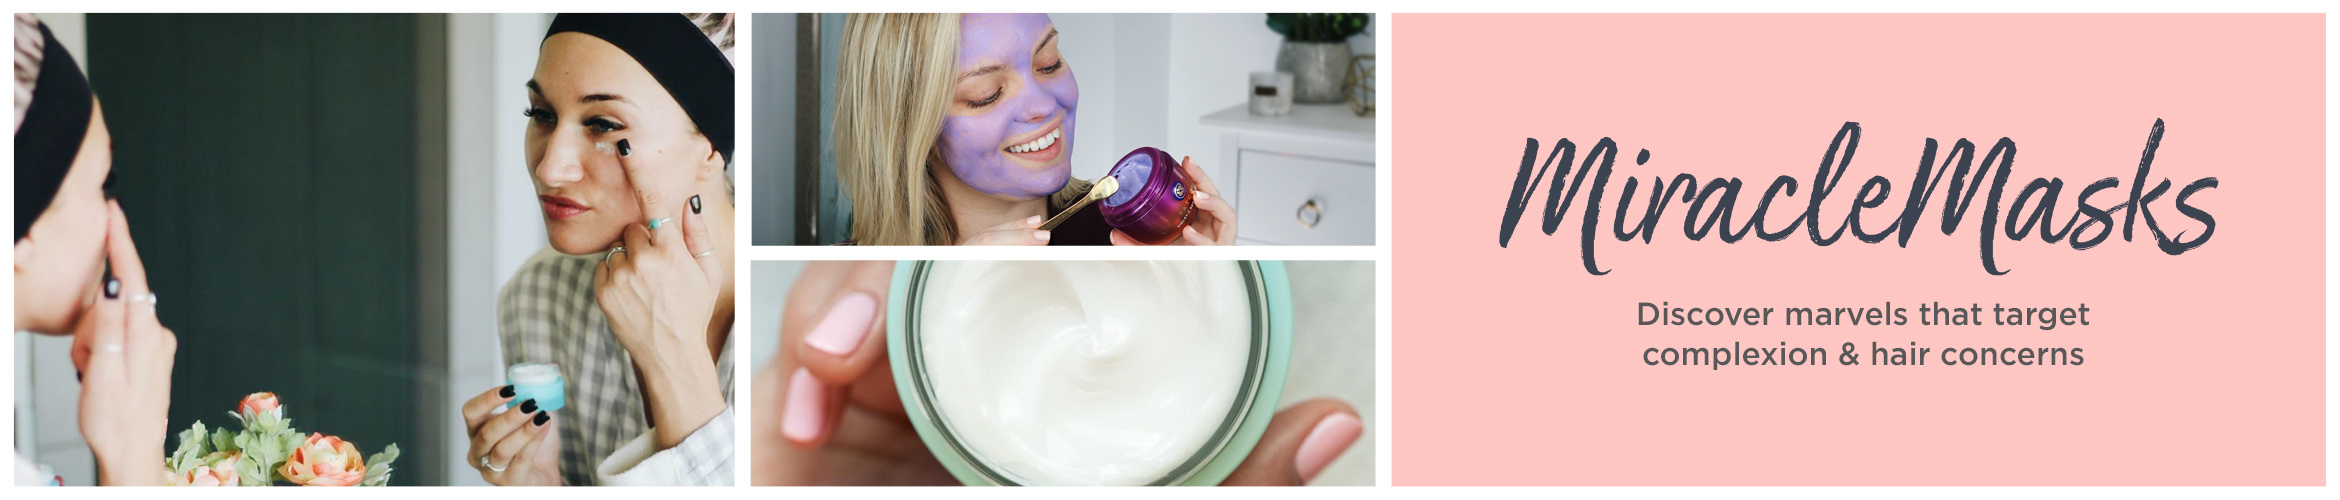 Miracle Masks  Discover marvels that target complexion & hair concerns